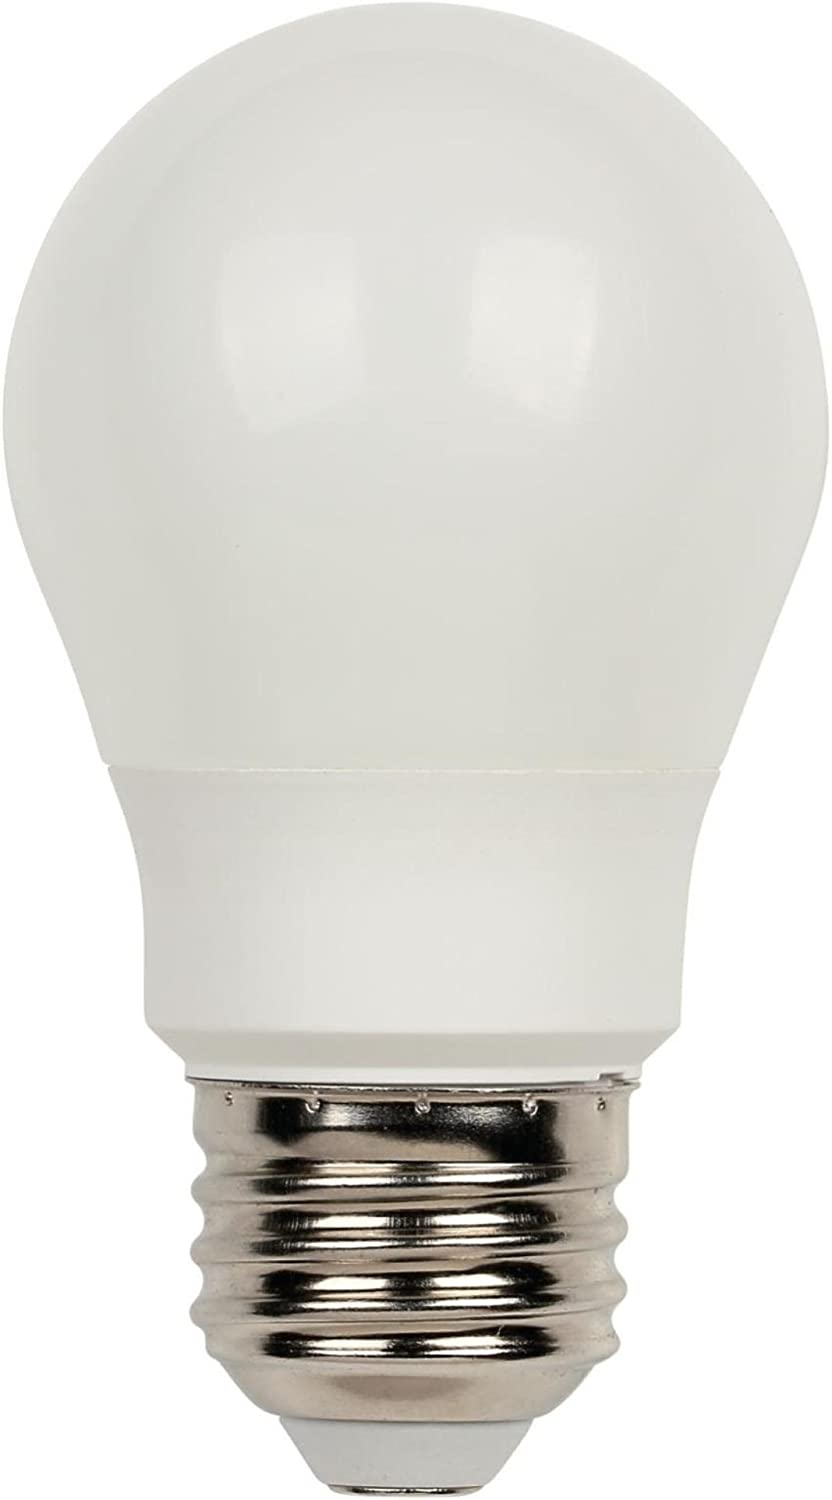 Westinghouse Lighting 4513600 60-Watt Equivalent A15 Soft White LED Light Bulb with Medium Base, Single Pack